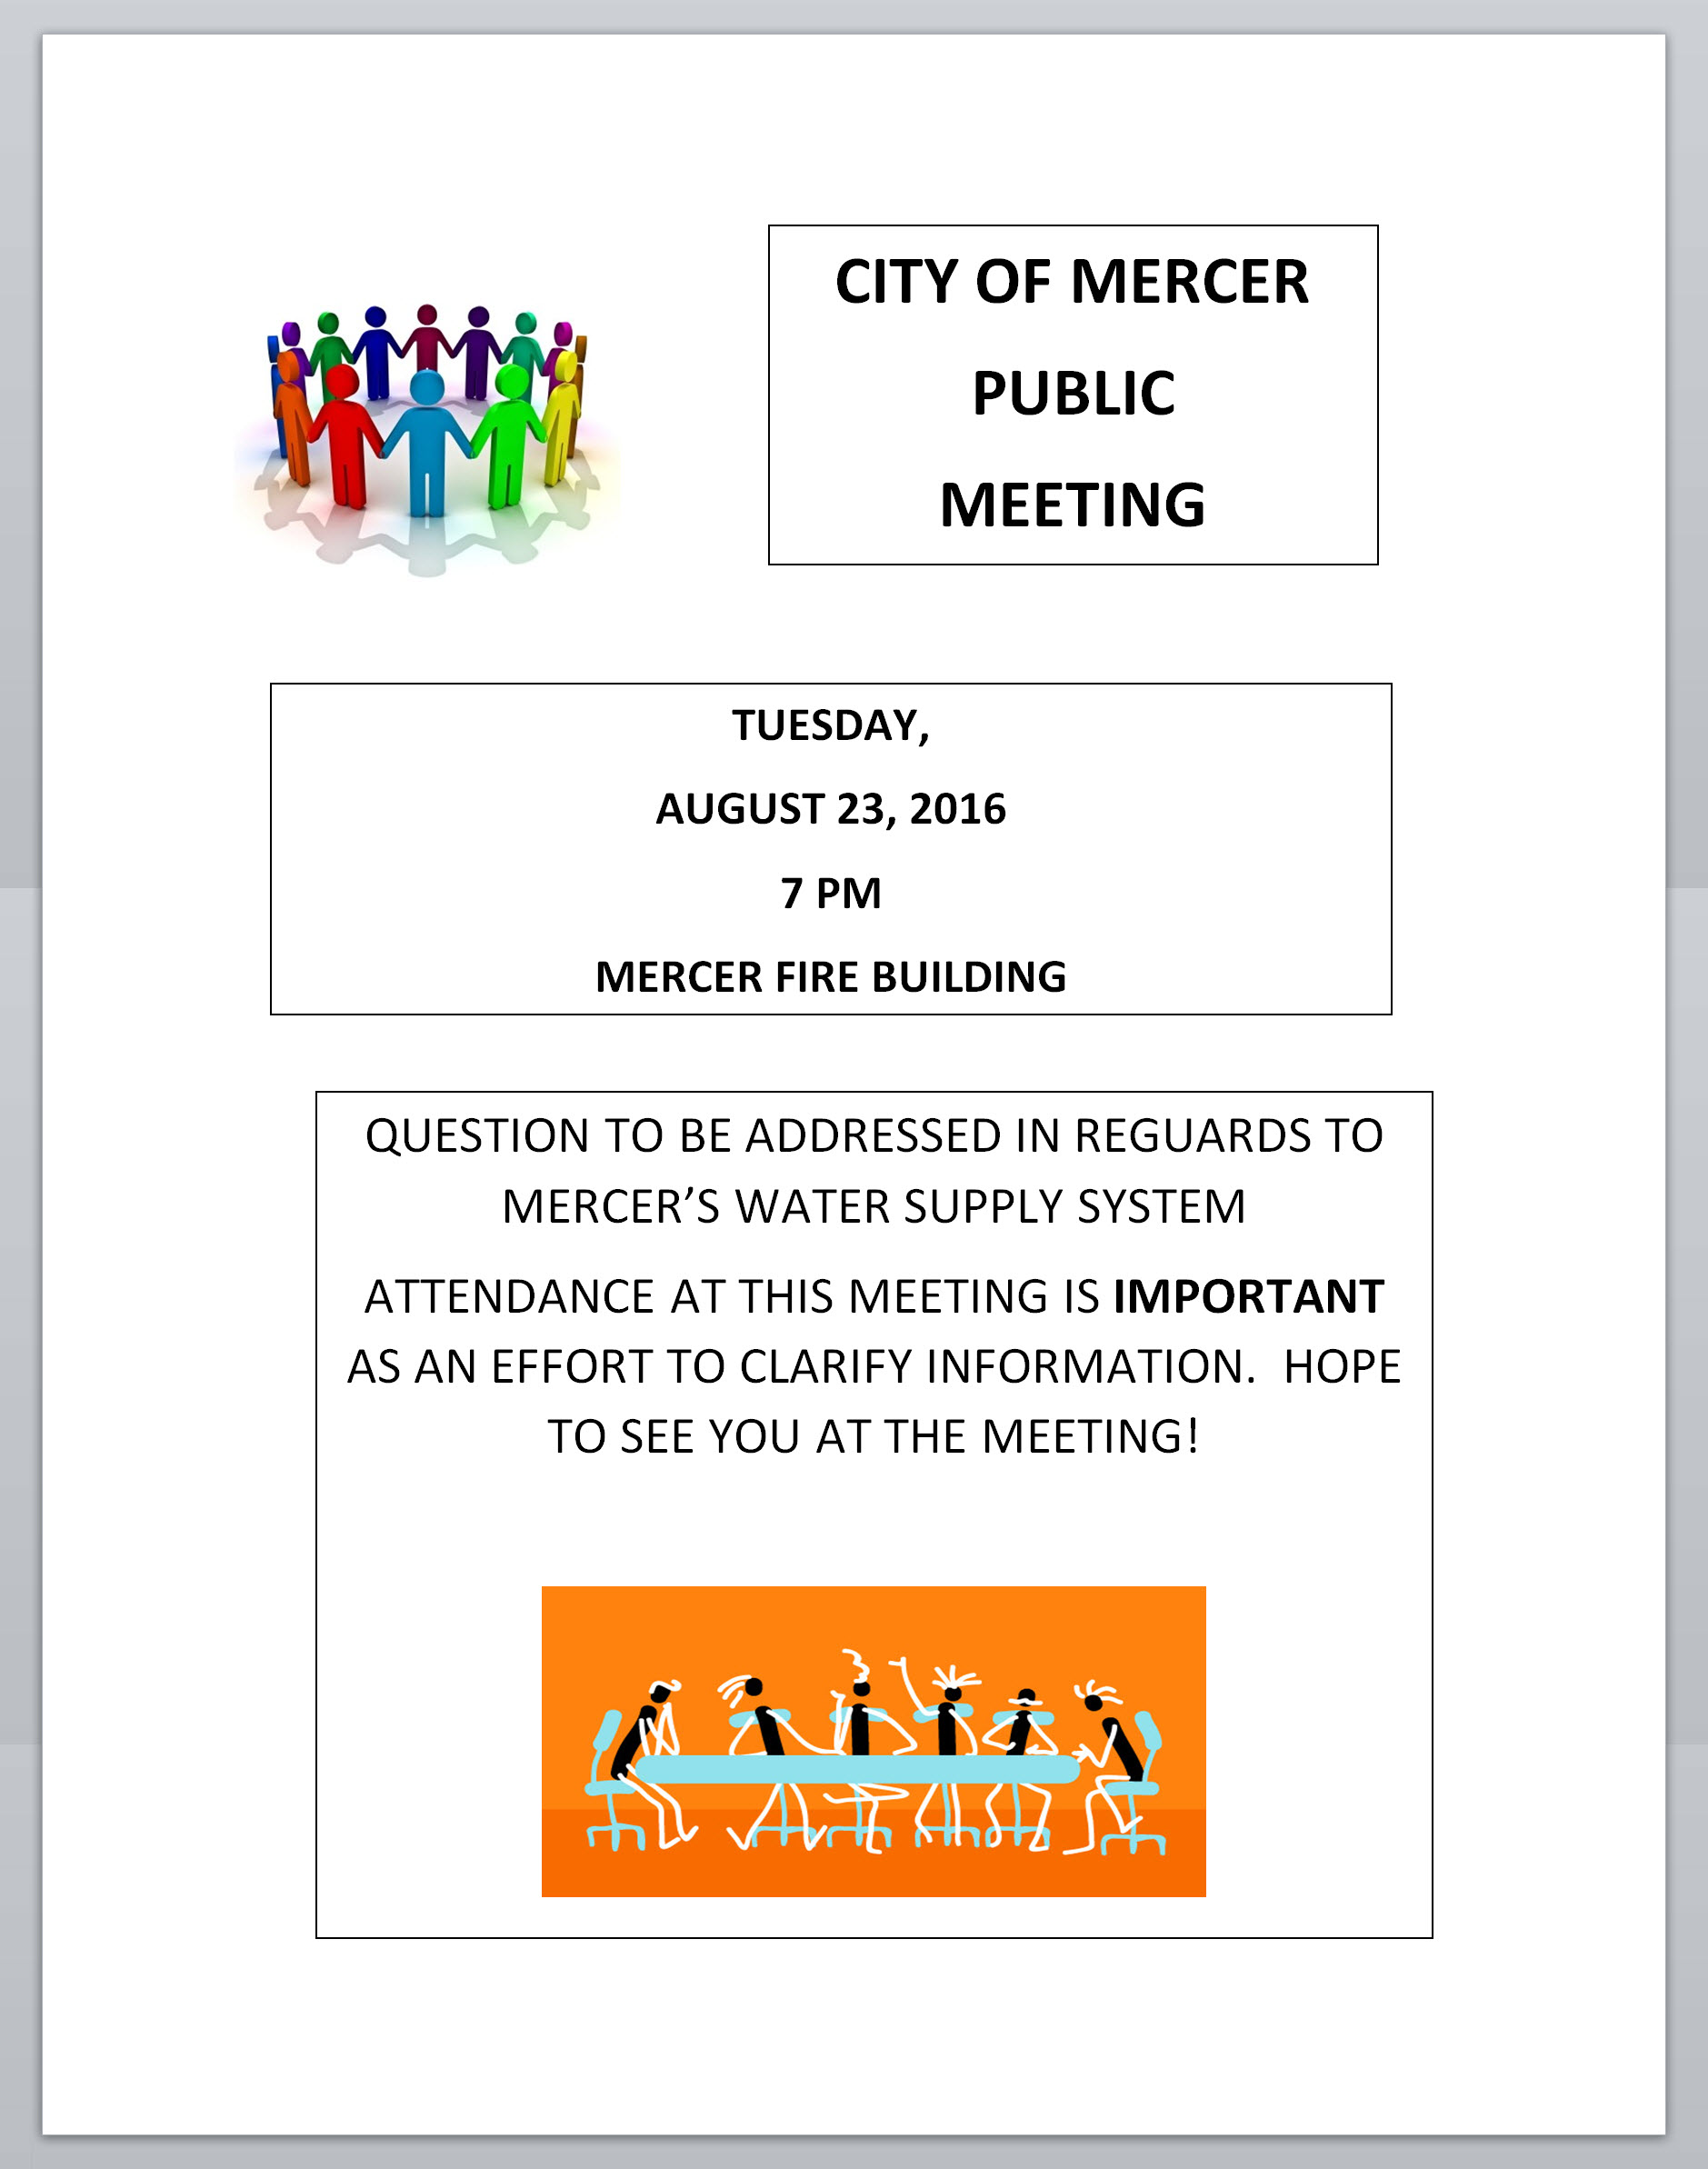 August 23, 2016 City of Mercer Public Meeting